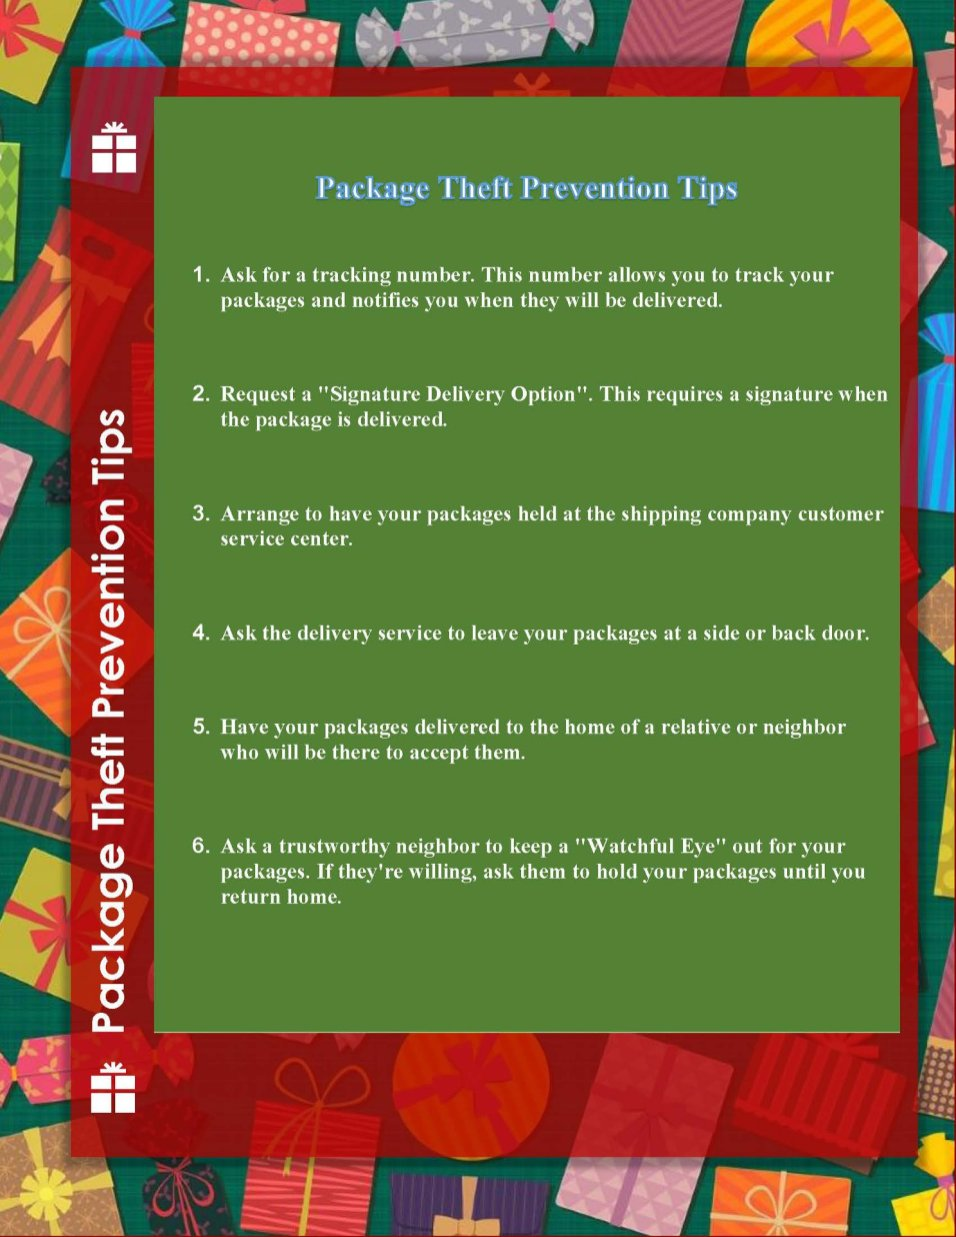 Barrington Police Department Package Theft Prevention Tips